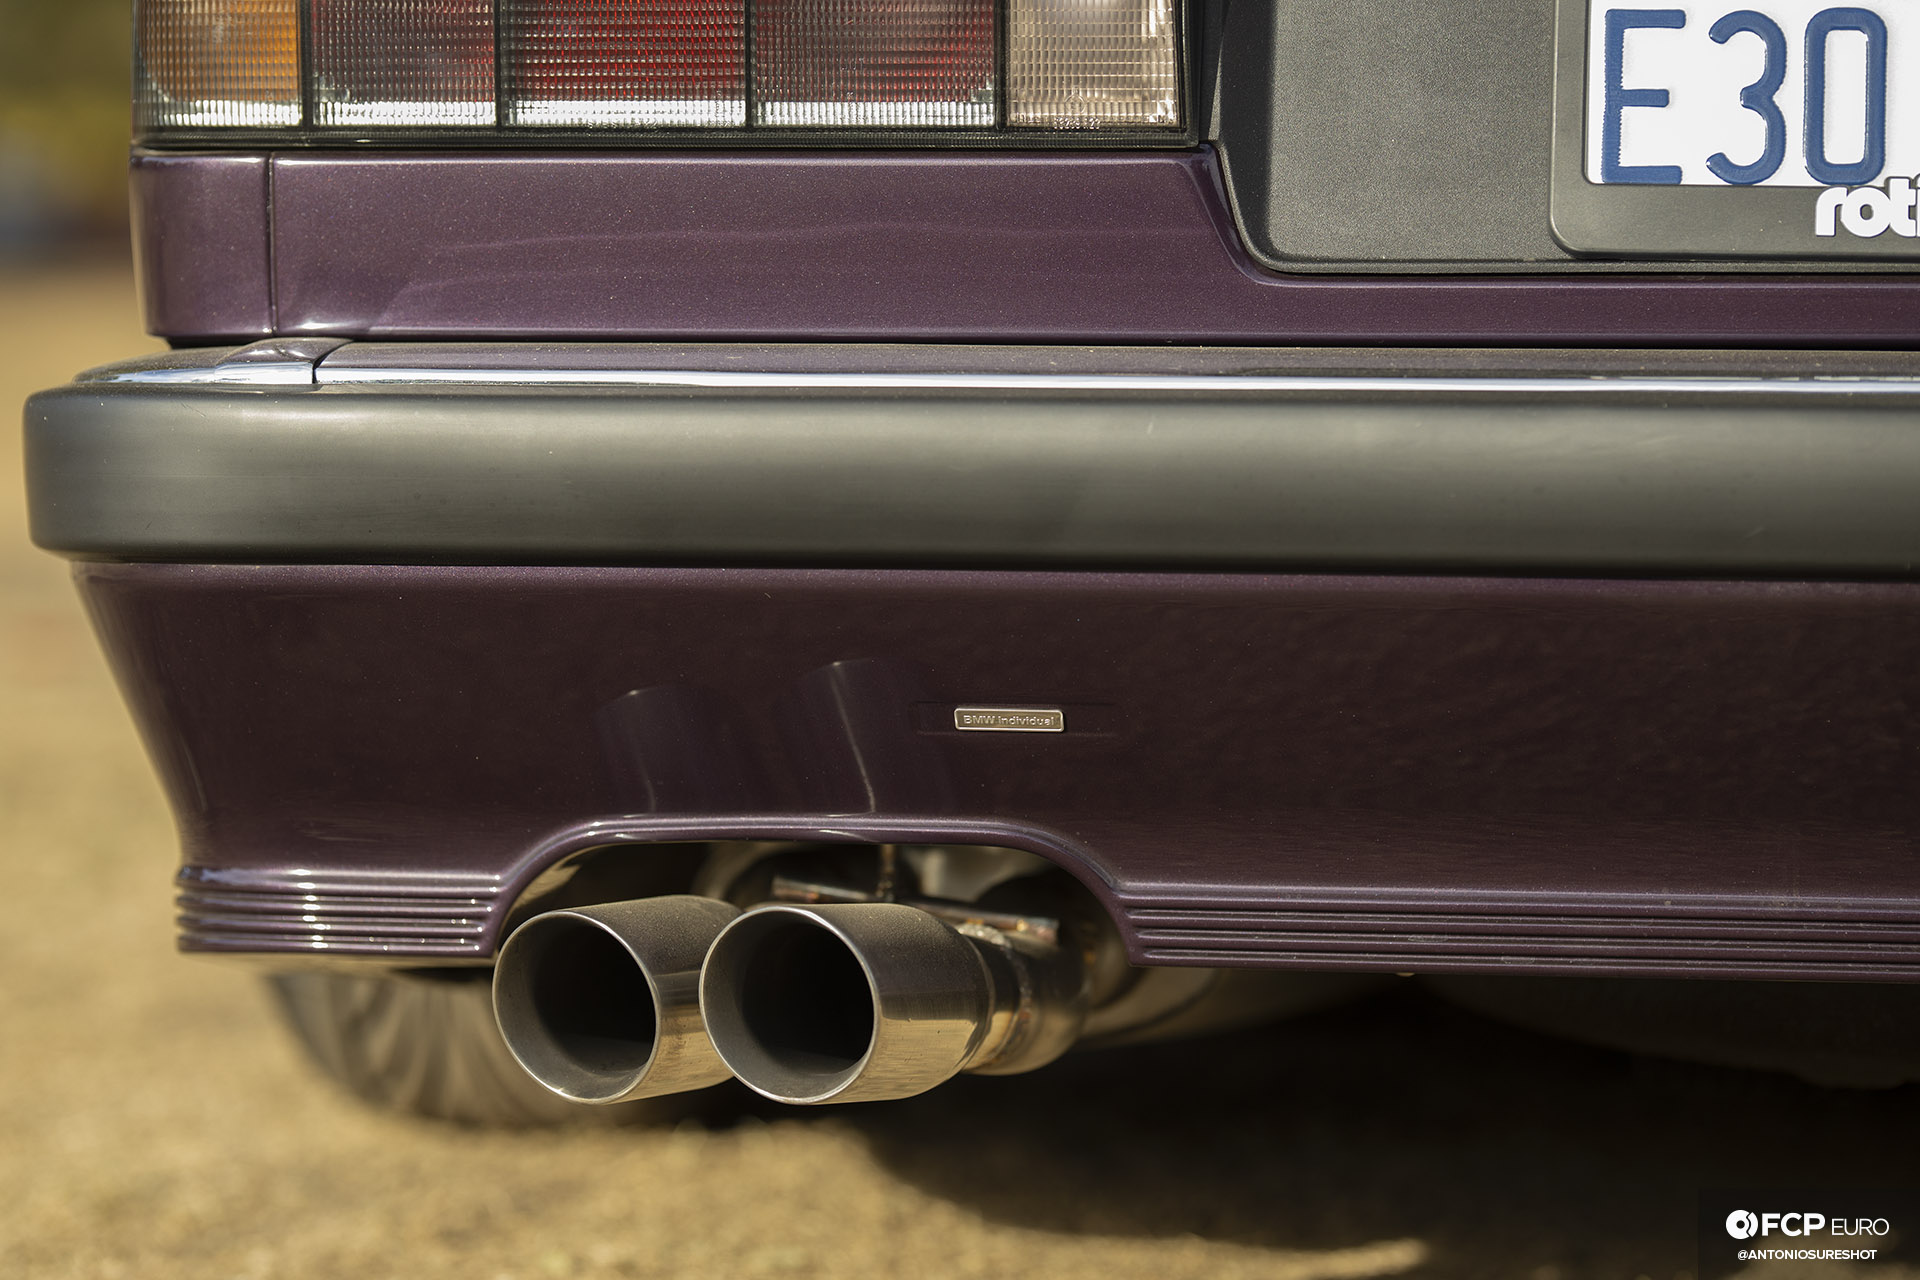 CAtuned Daytona Violet E30 BMW Exhaust Tips